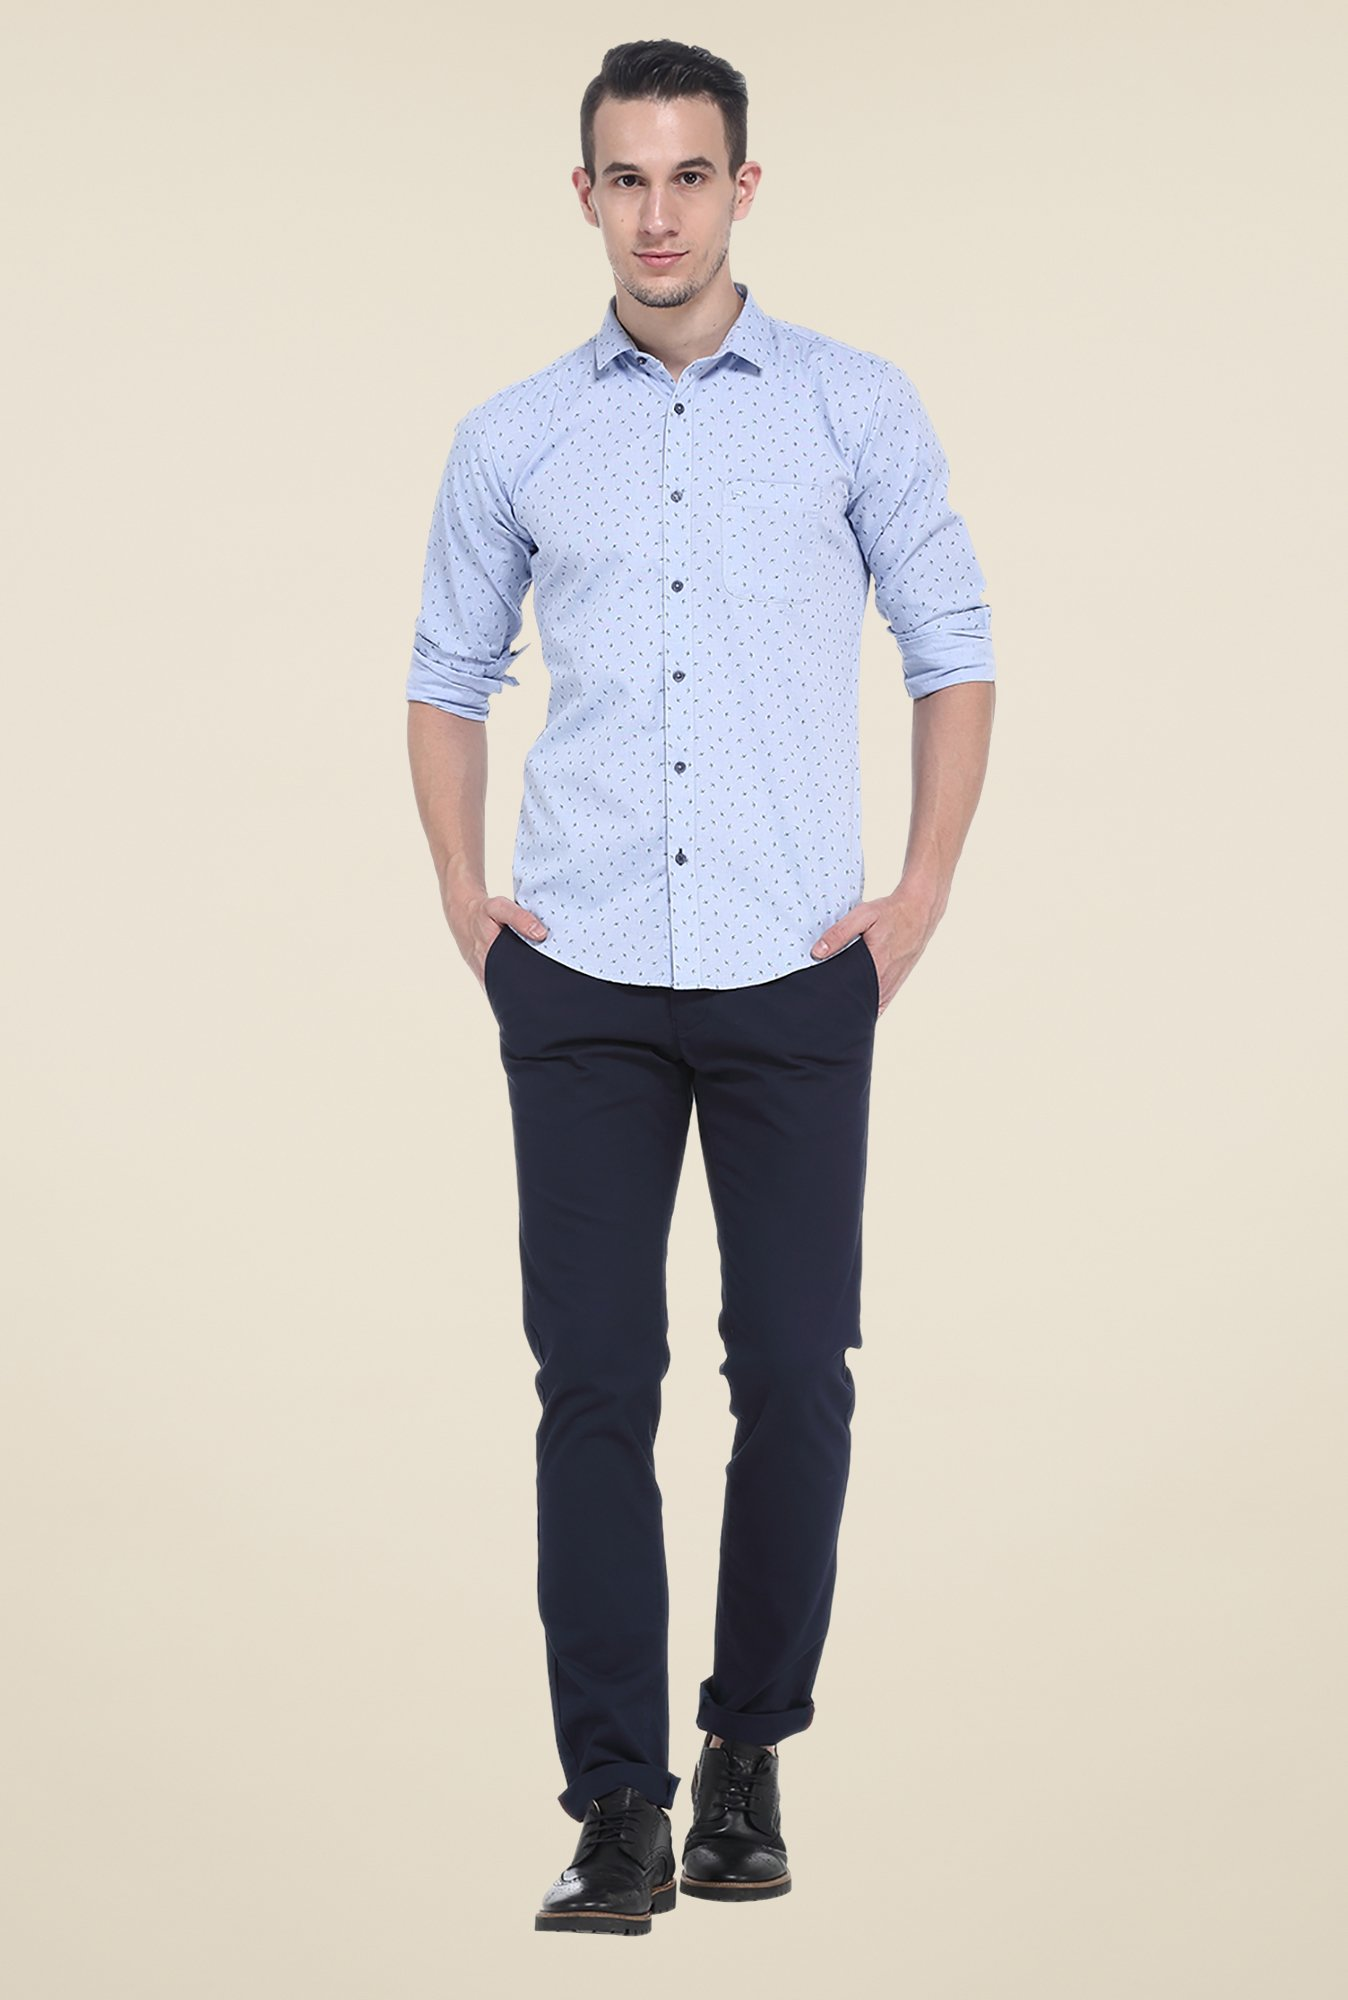 Basics Blue Printed Cotton Shirt